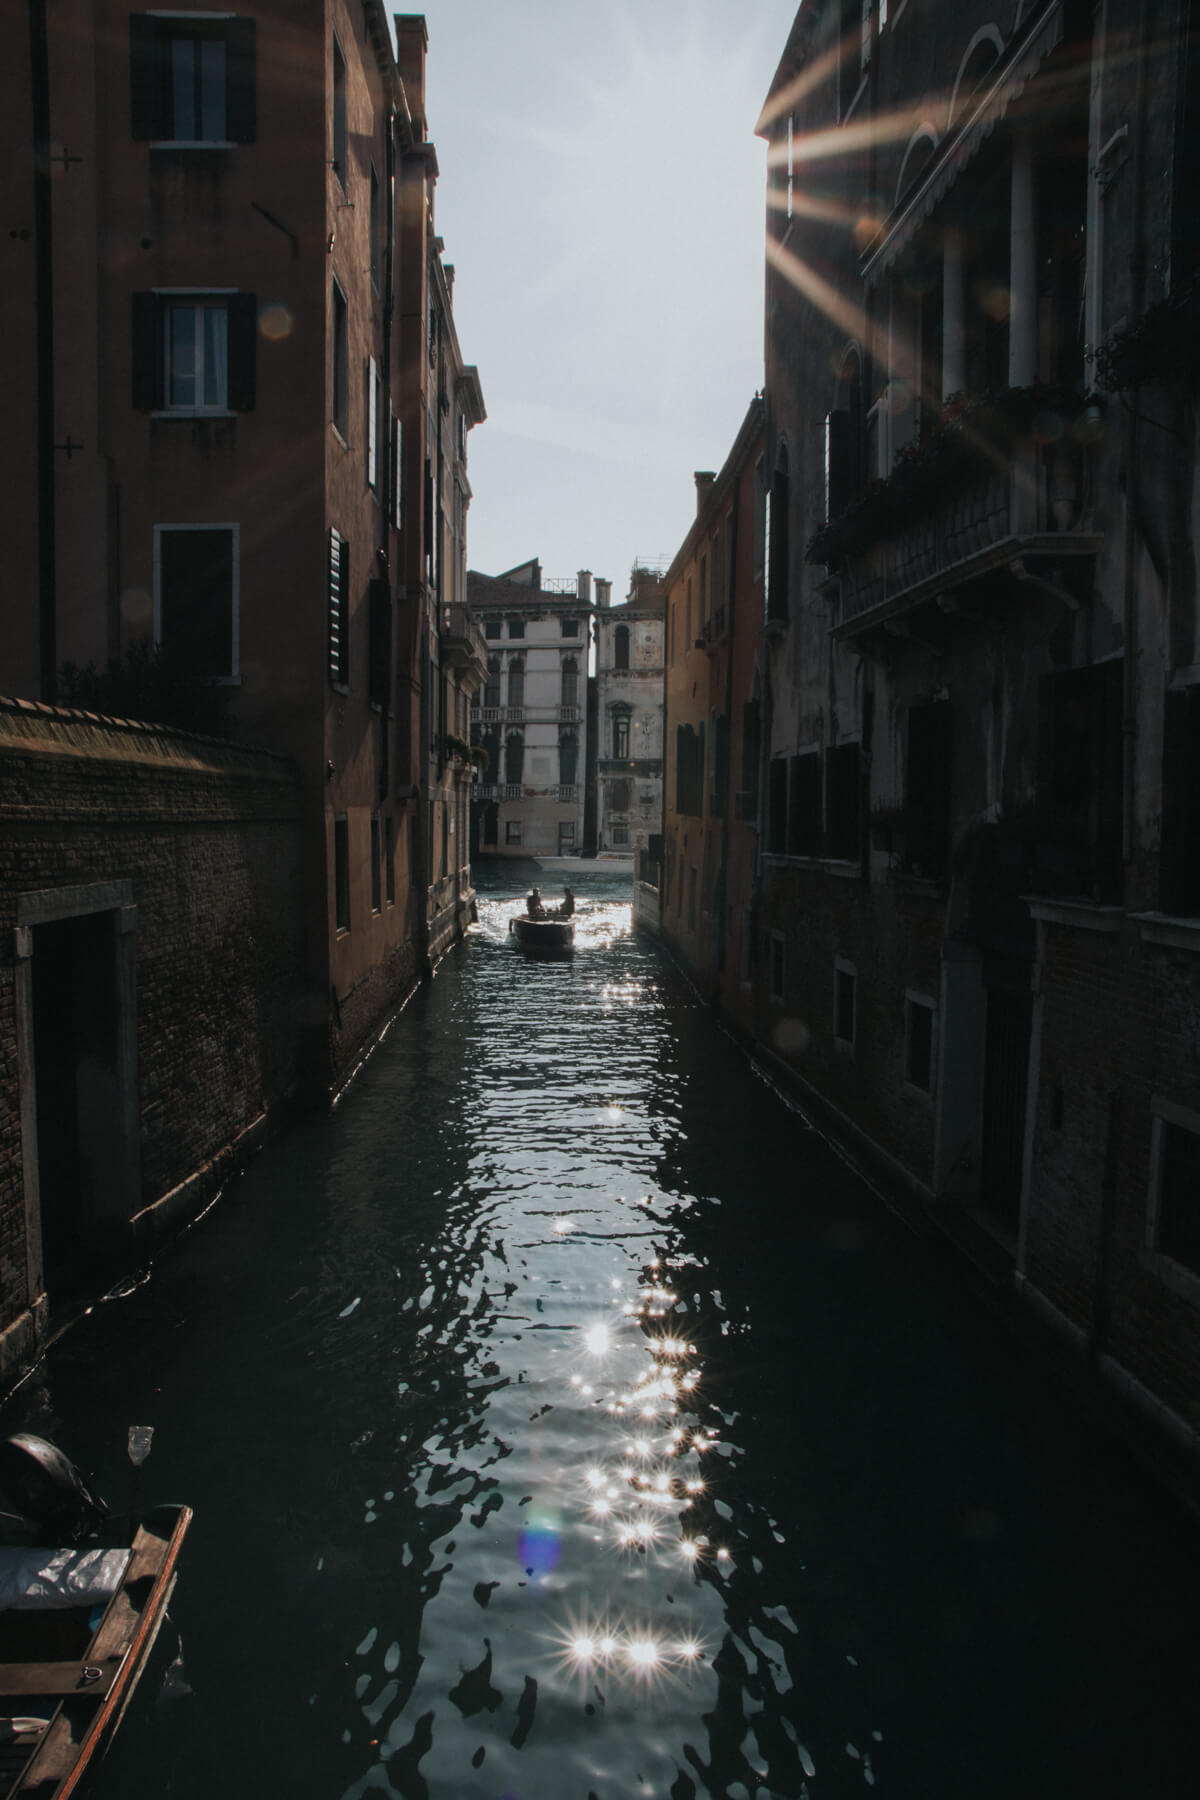 Views in Venice